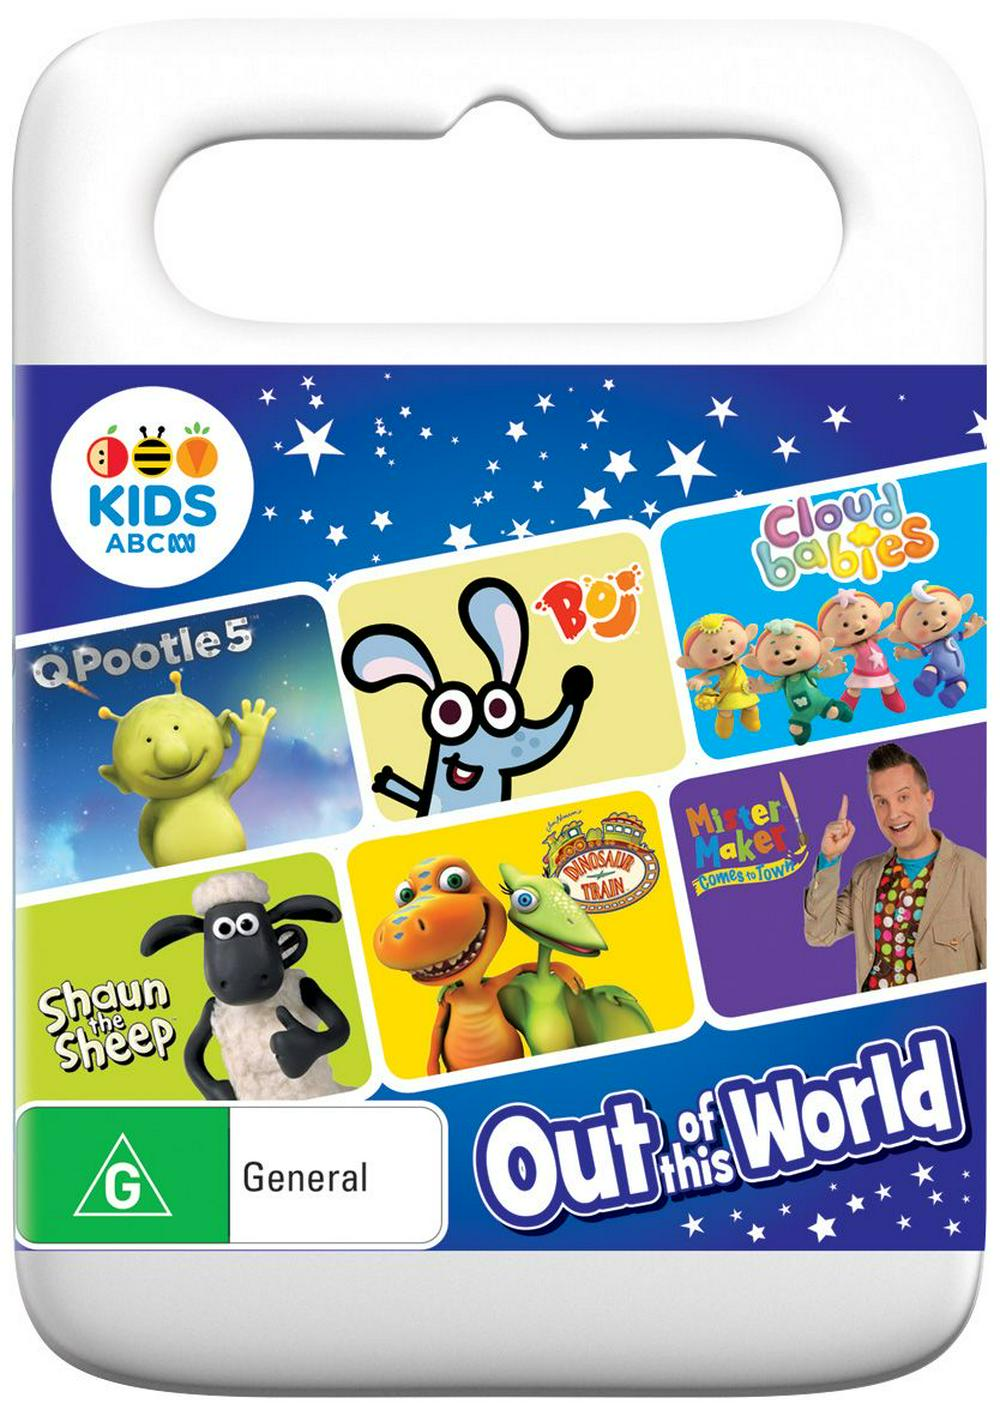 ABC Kids - Out of this World